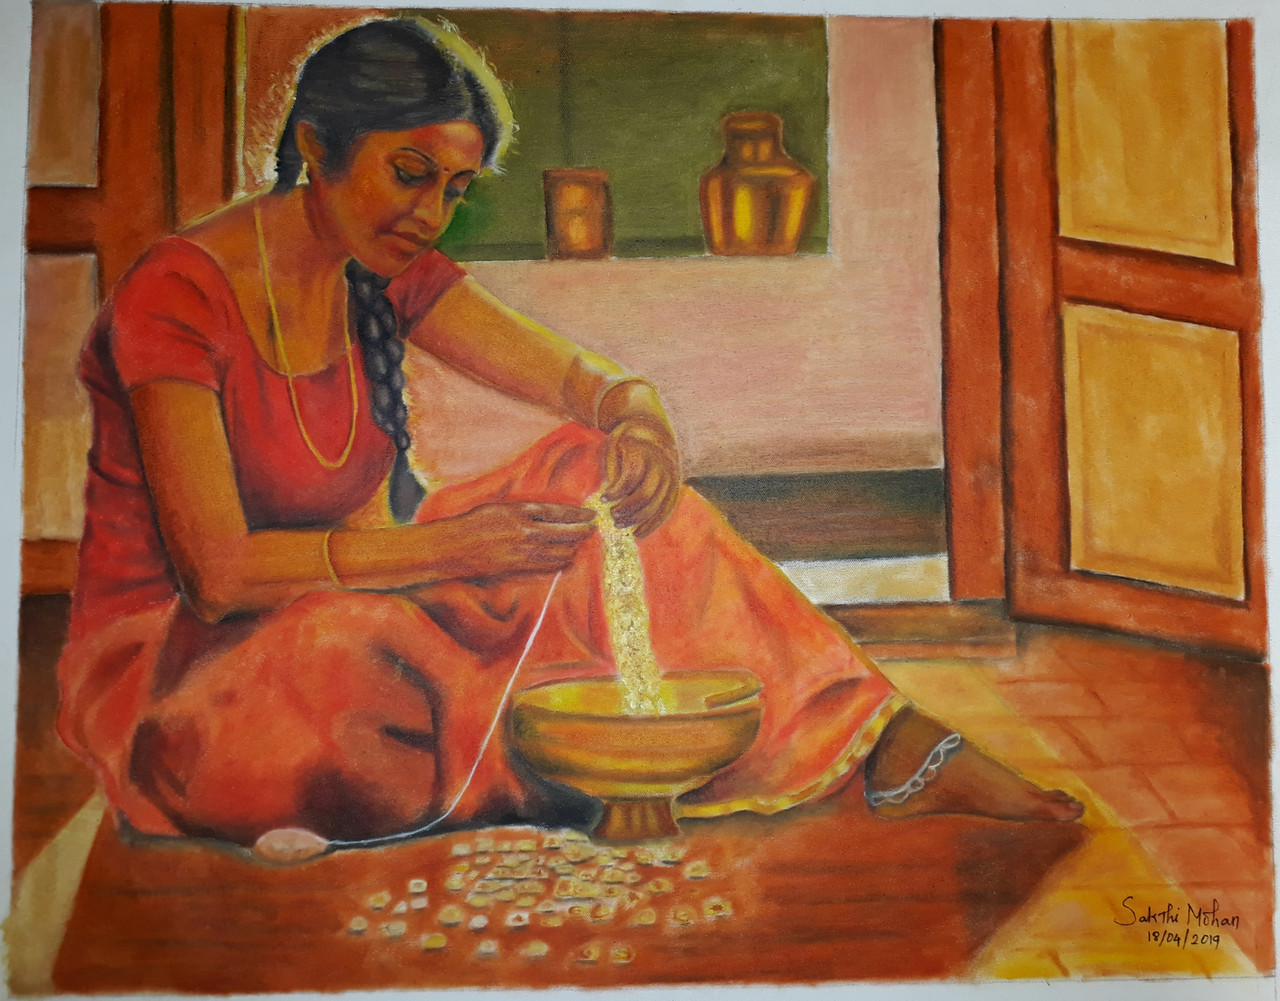 Indian Woman Making Garland Of Flower Art 6071 36917 Handpainted Art Painting 25in X 20in